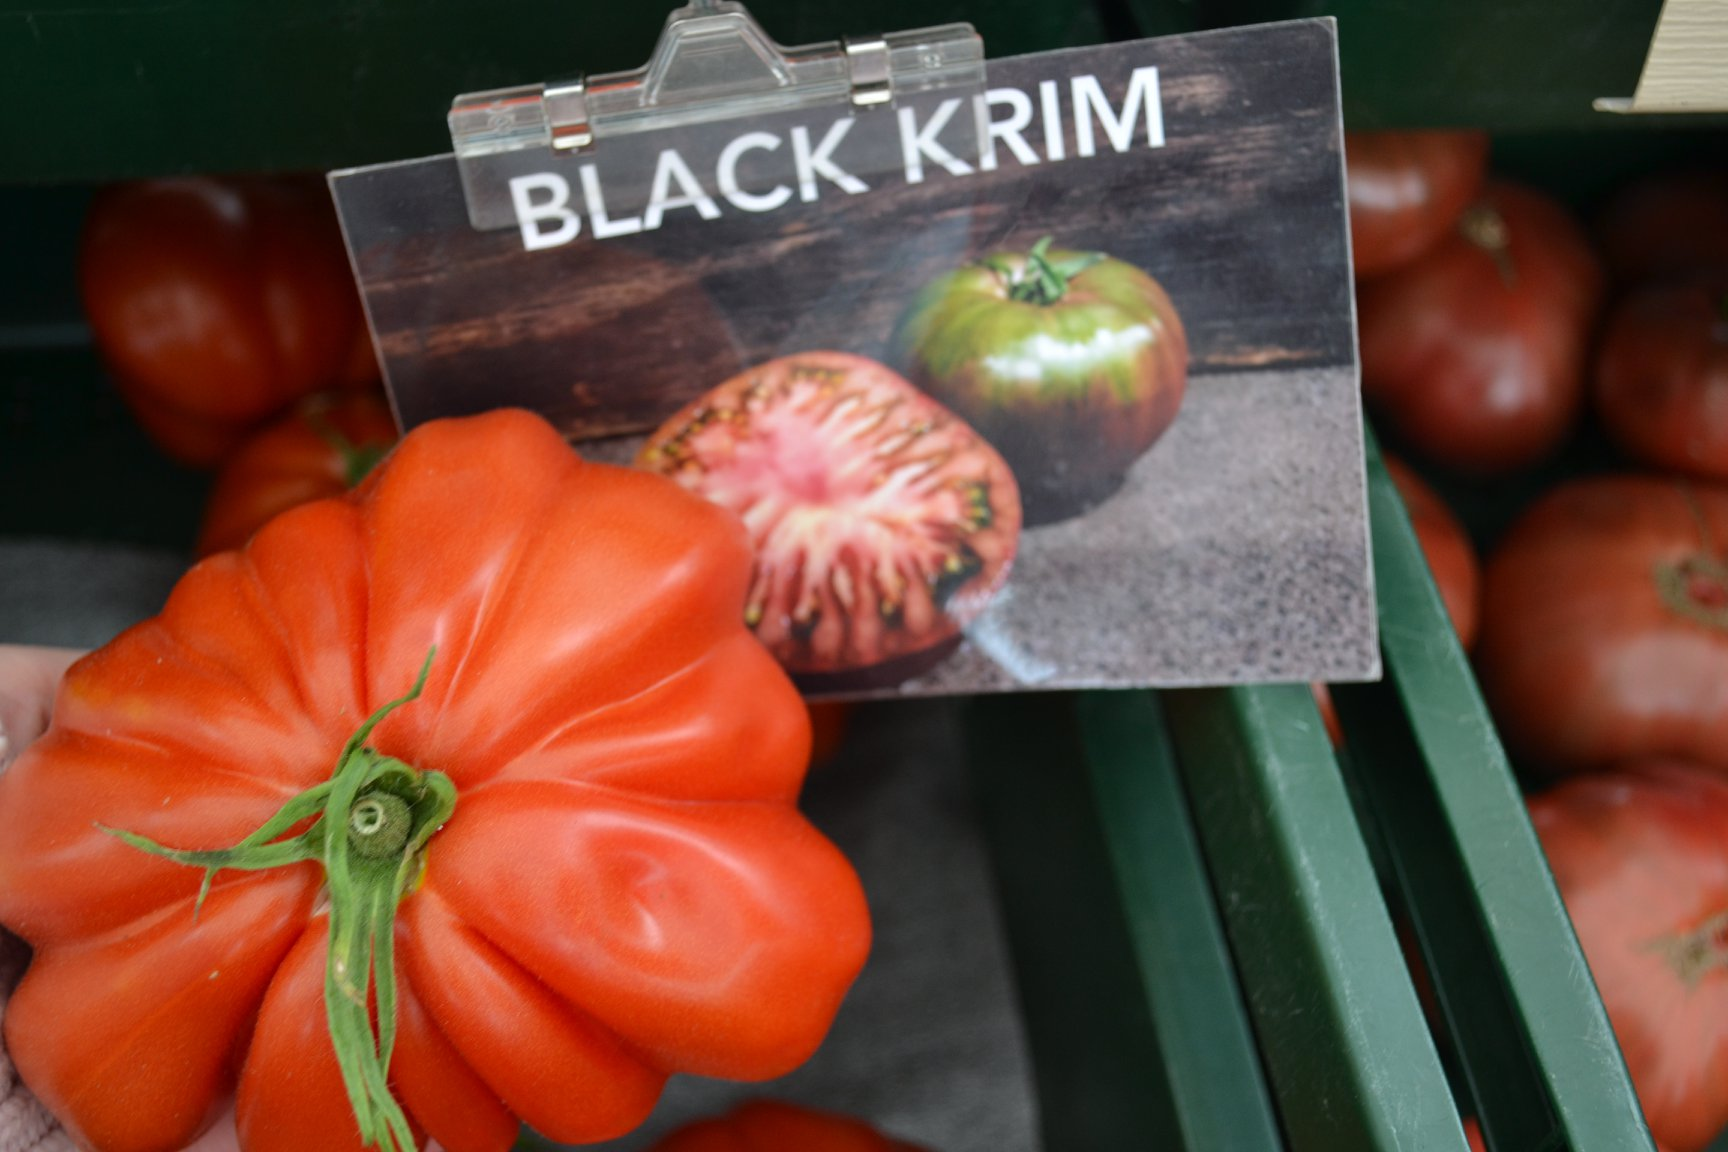 June 2019 S4 Black Krim tomato.jpg